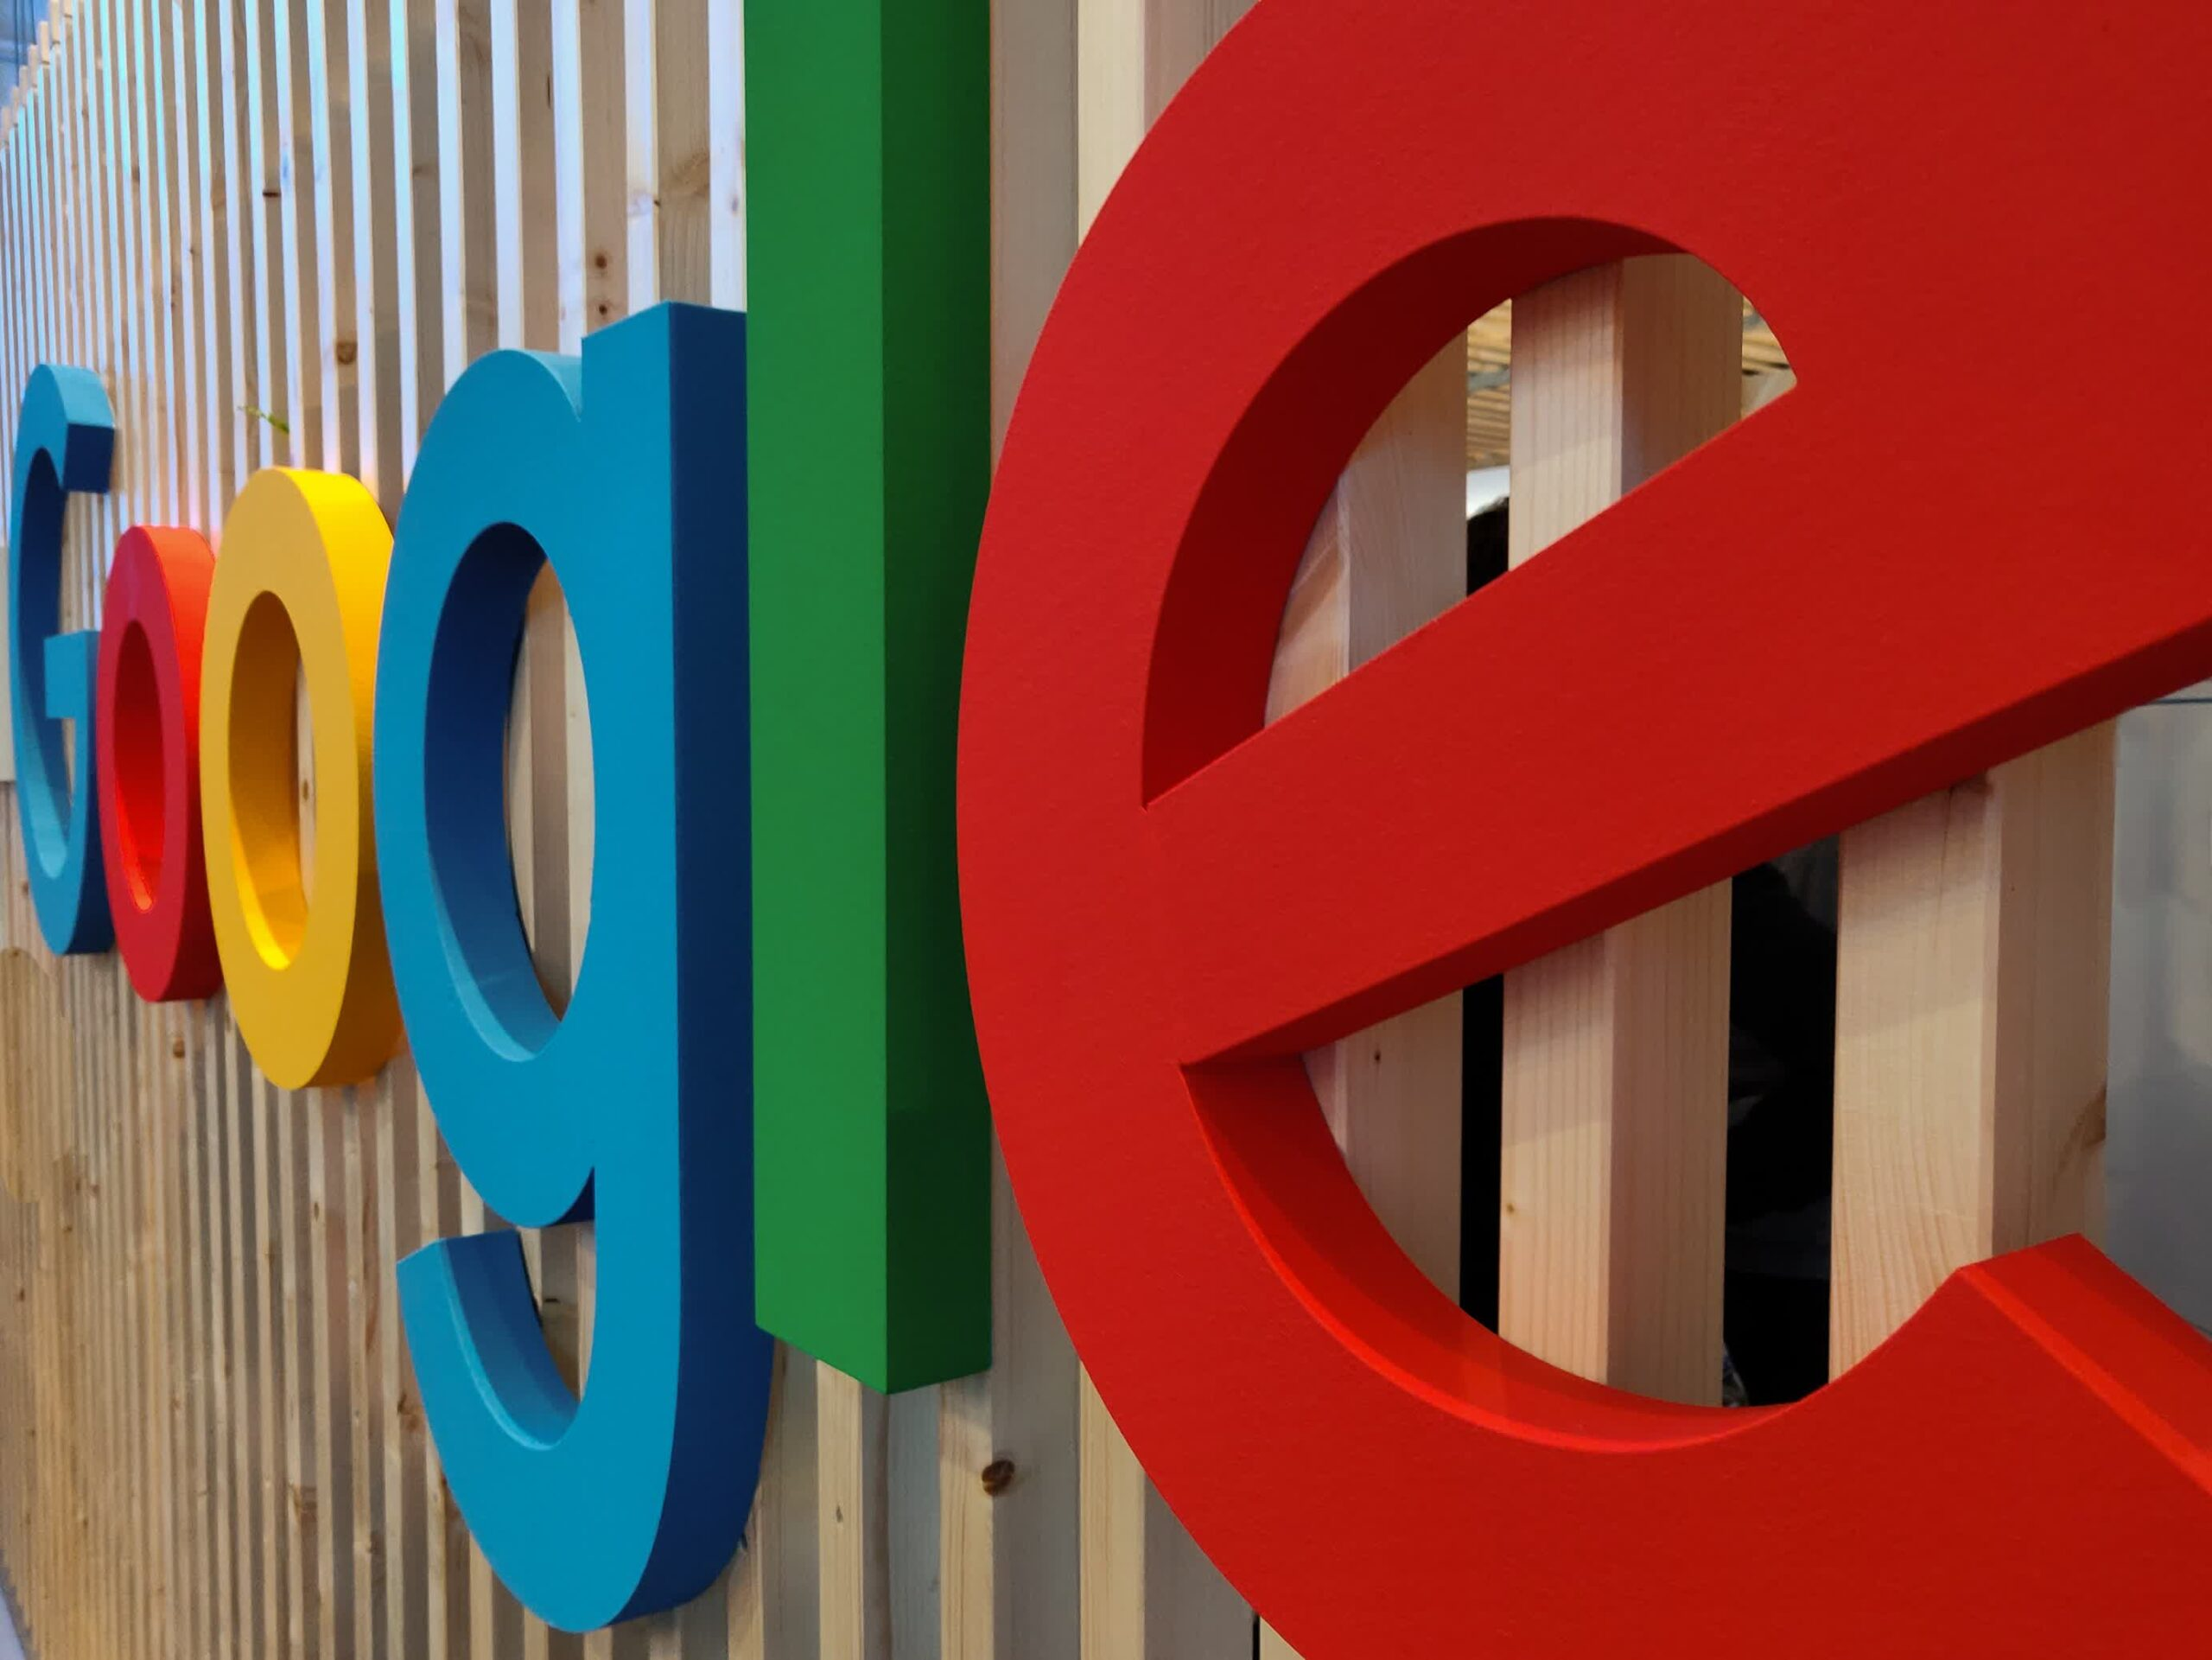 Google accused of illegally spying on employees before firing them